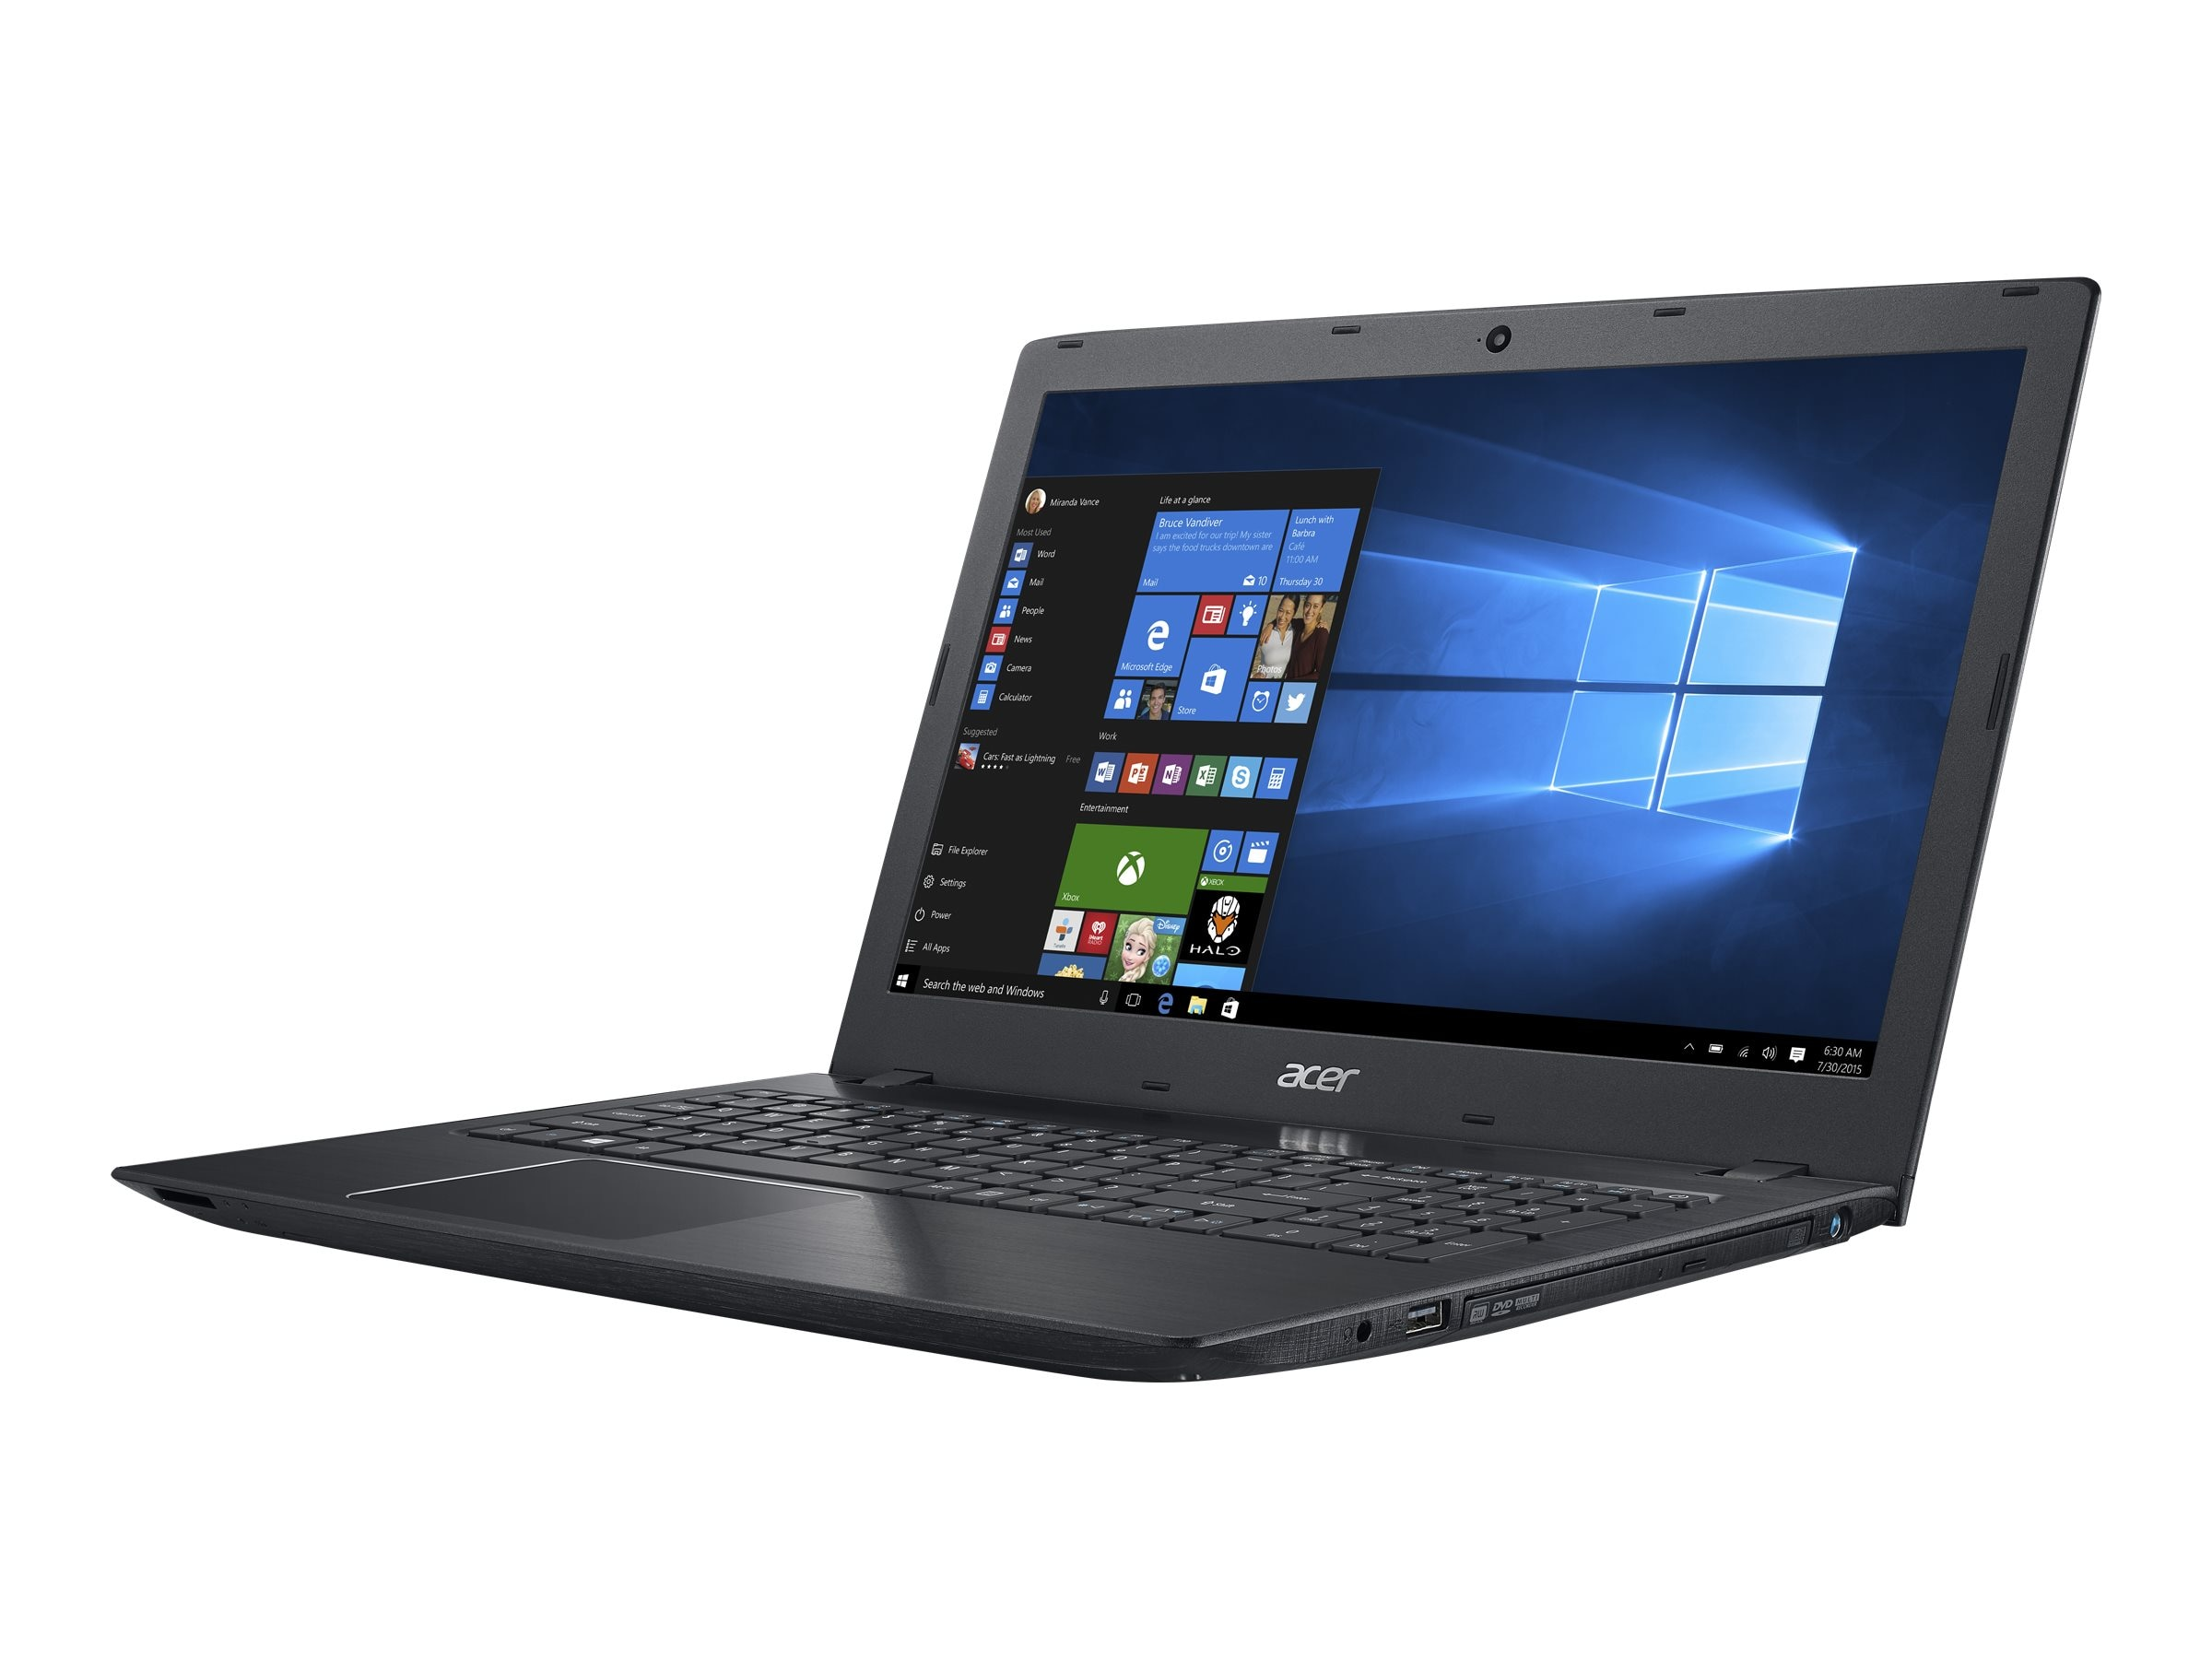 Acer Aspire E5-553-F55F 2.7GHz FX-Series 15.6in display, NX.GEQAA.004